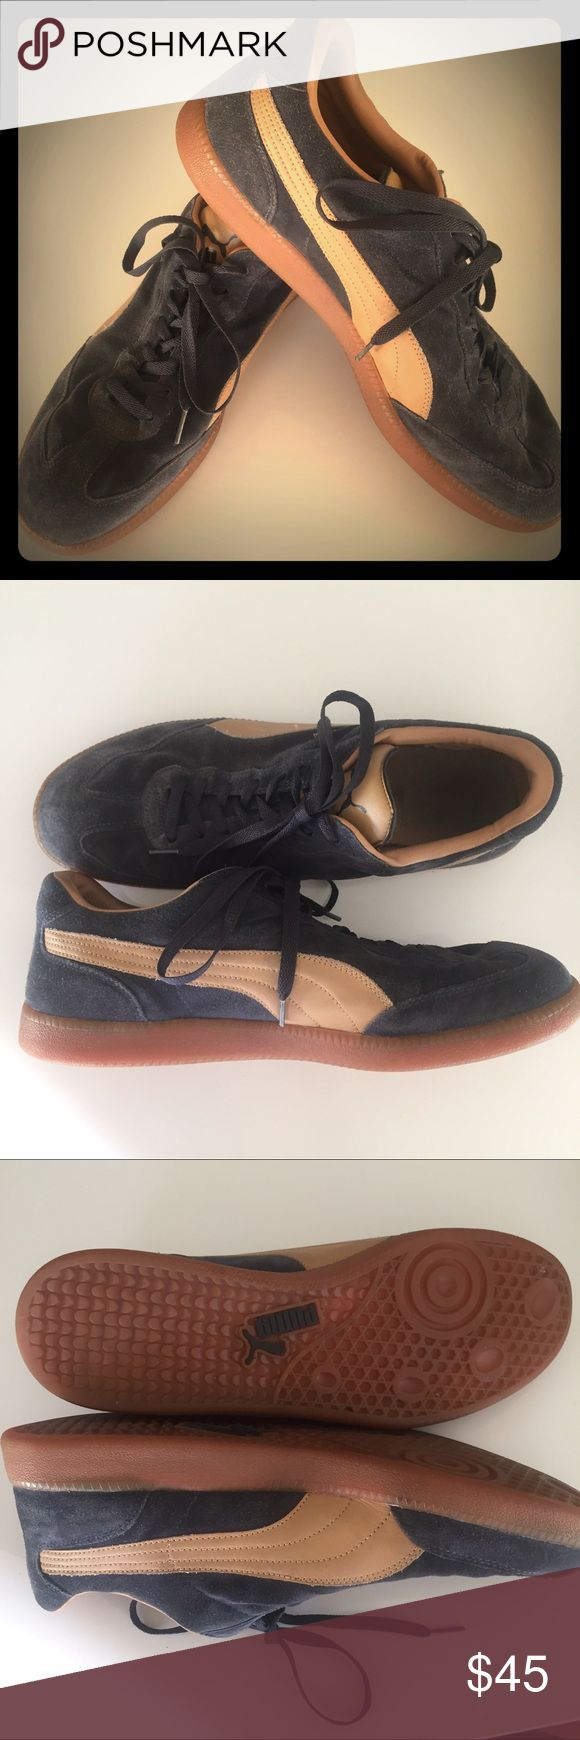 Puma Liga Men's Suede Sneakers Who doesn't need blue suede shoes?!  Suede with tan leather swipe.  Sturdy rubber soles.  One trip to the cobbler and these will look new! Puma Shoes Sneakers